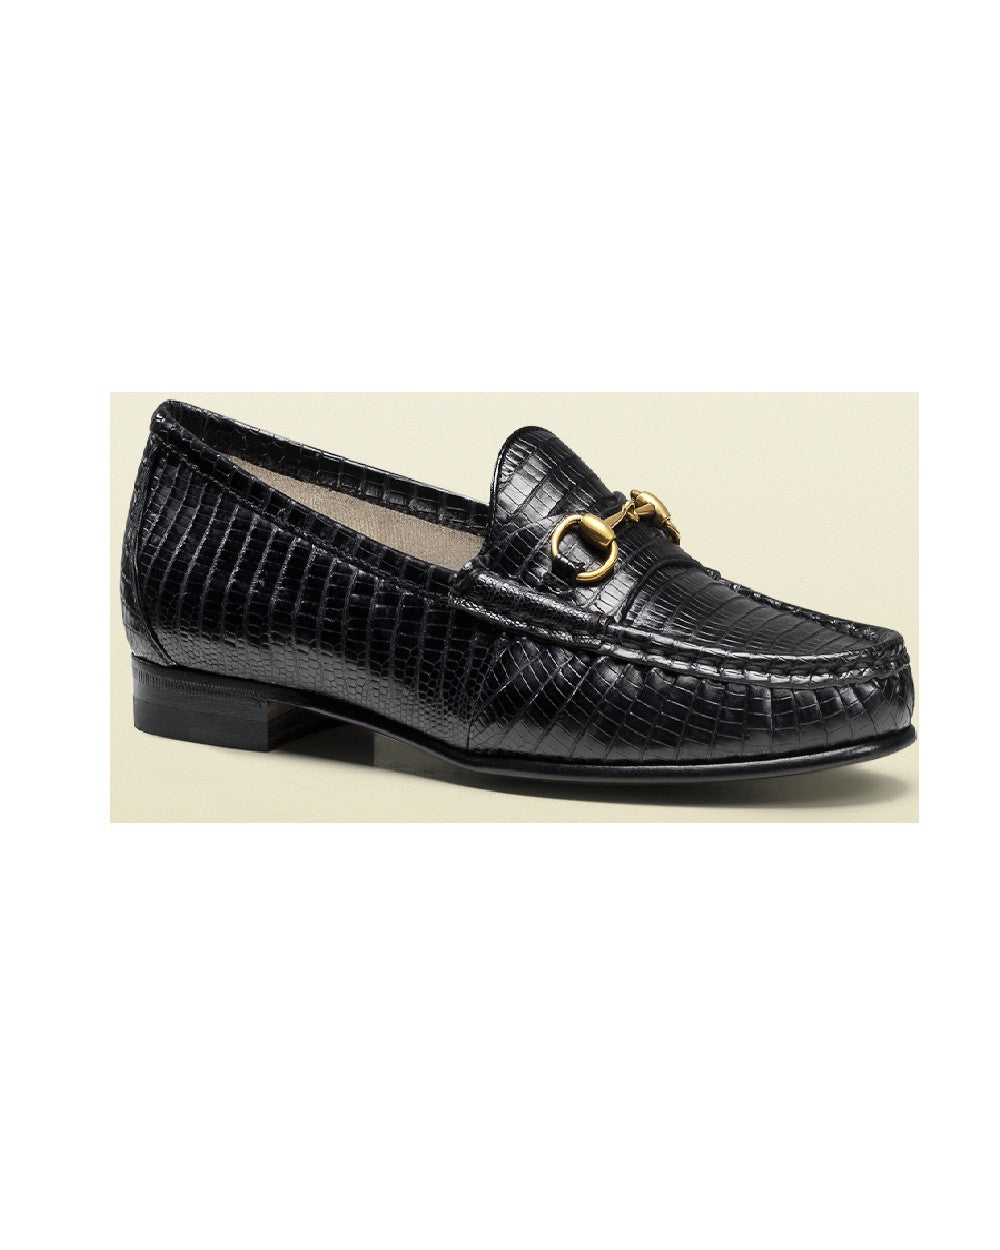 Black Snake Skin Loafers With Golden Horsebit Detail